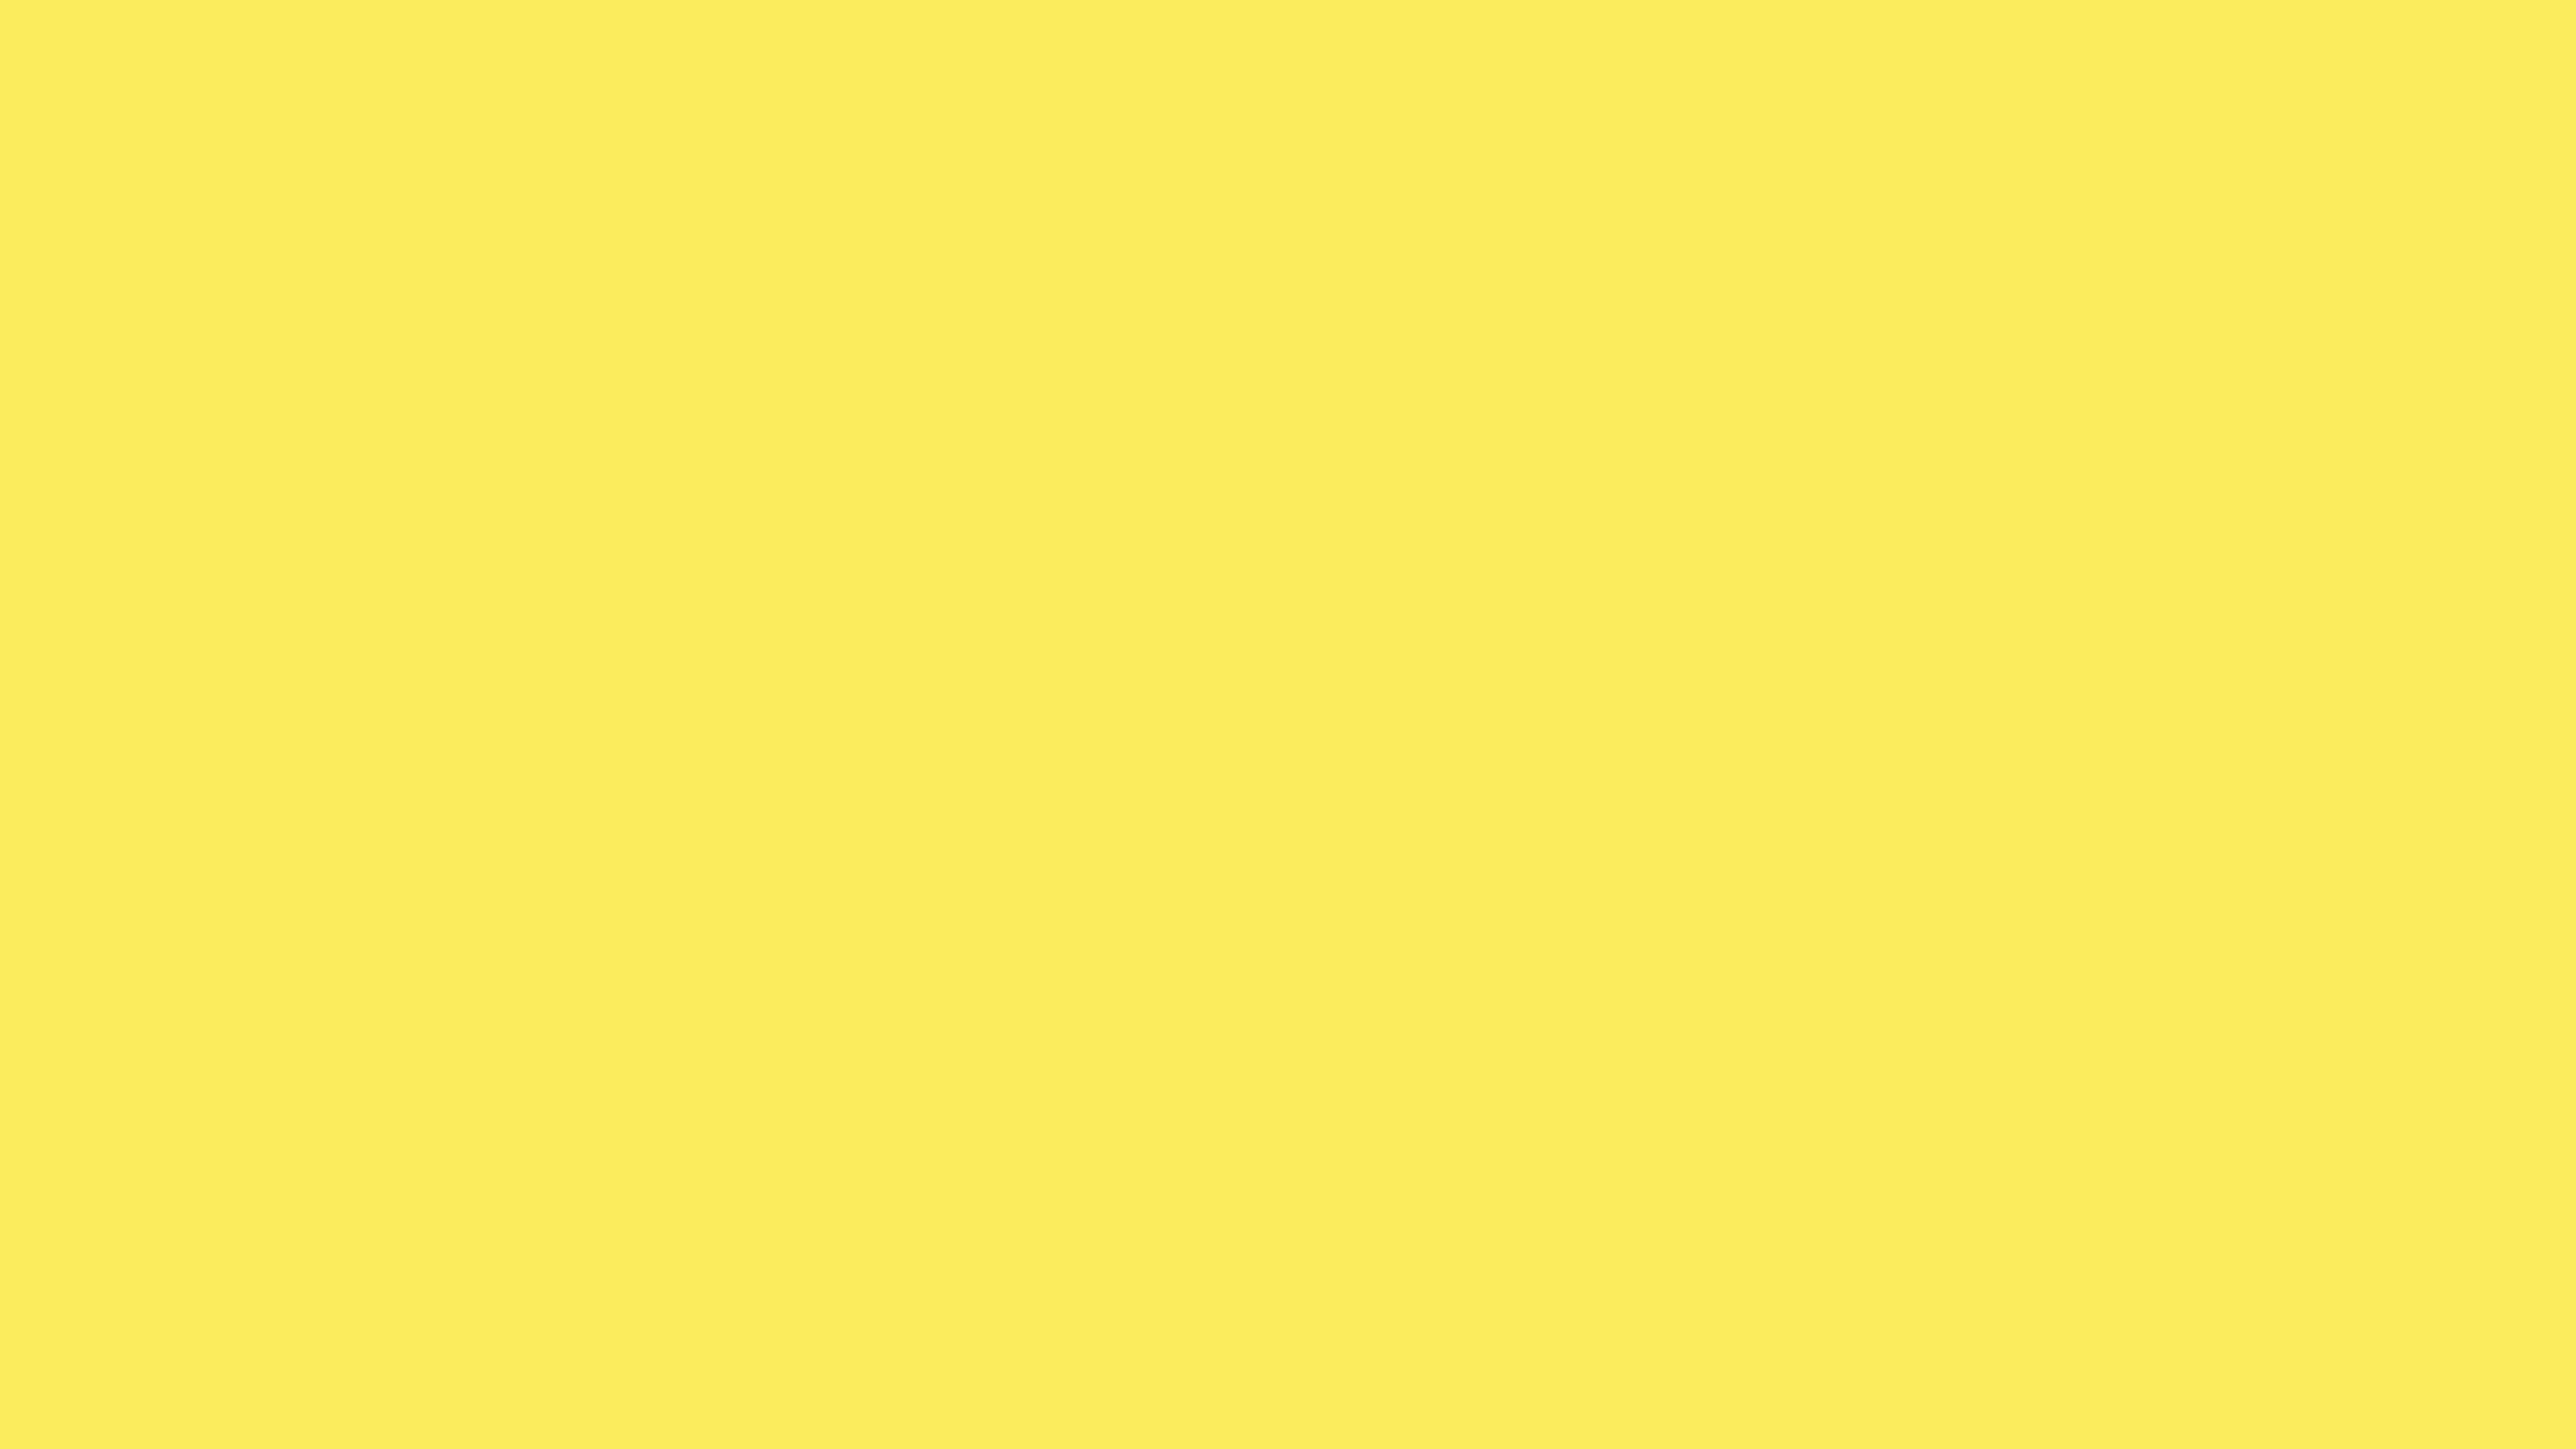 3840x2160 Maize Solid Color Background